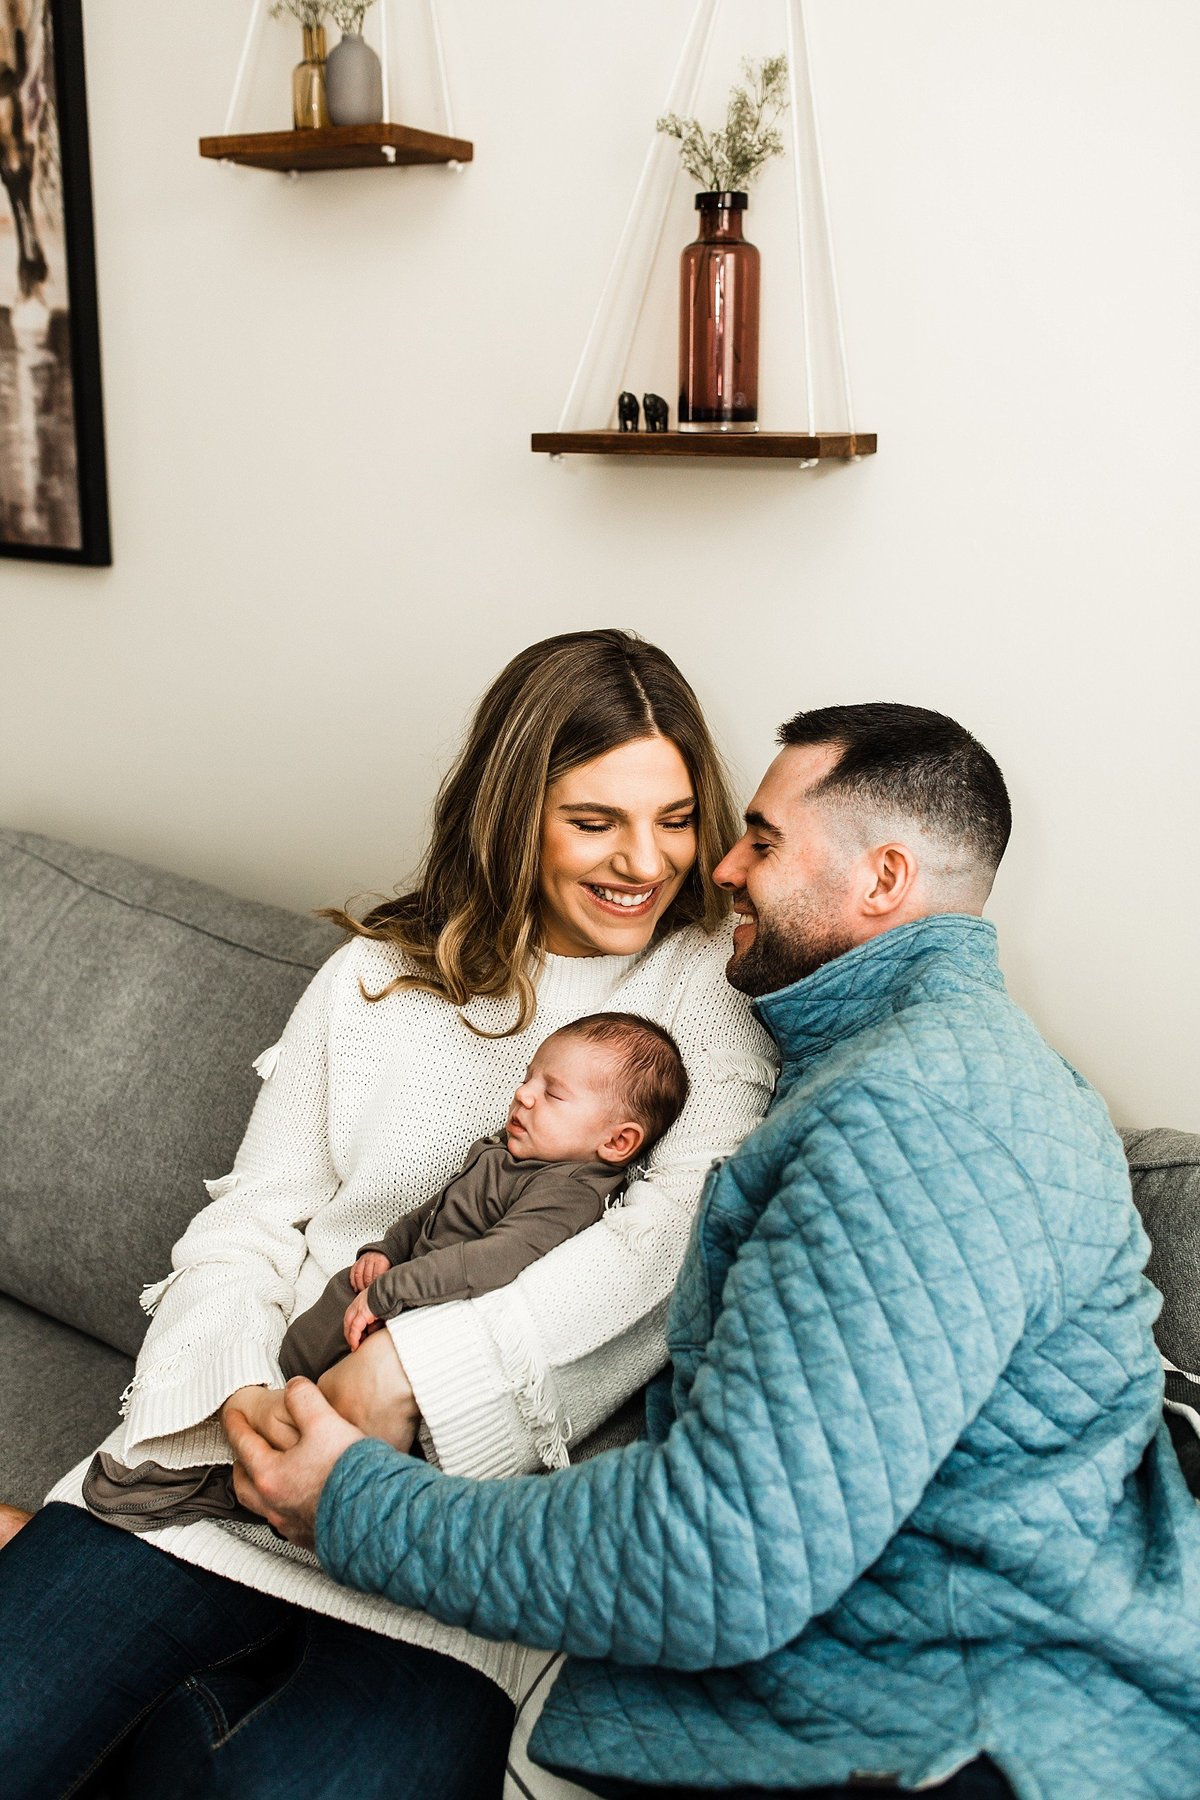 Cozy-In-Home-Newborn-Session-in-Phoenixville-pennsylvania-rebecca-renner-photography_0014